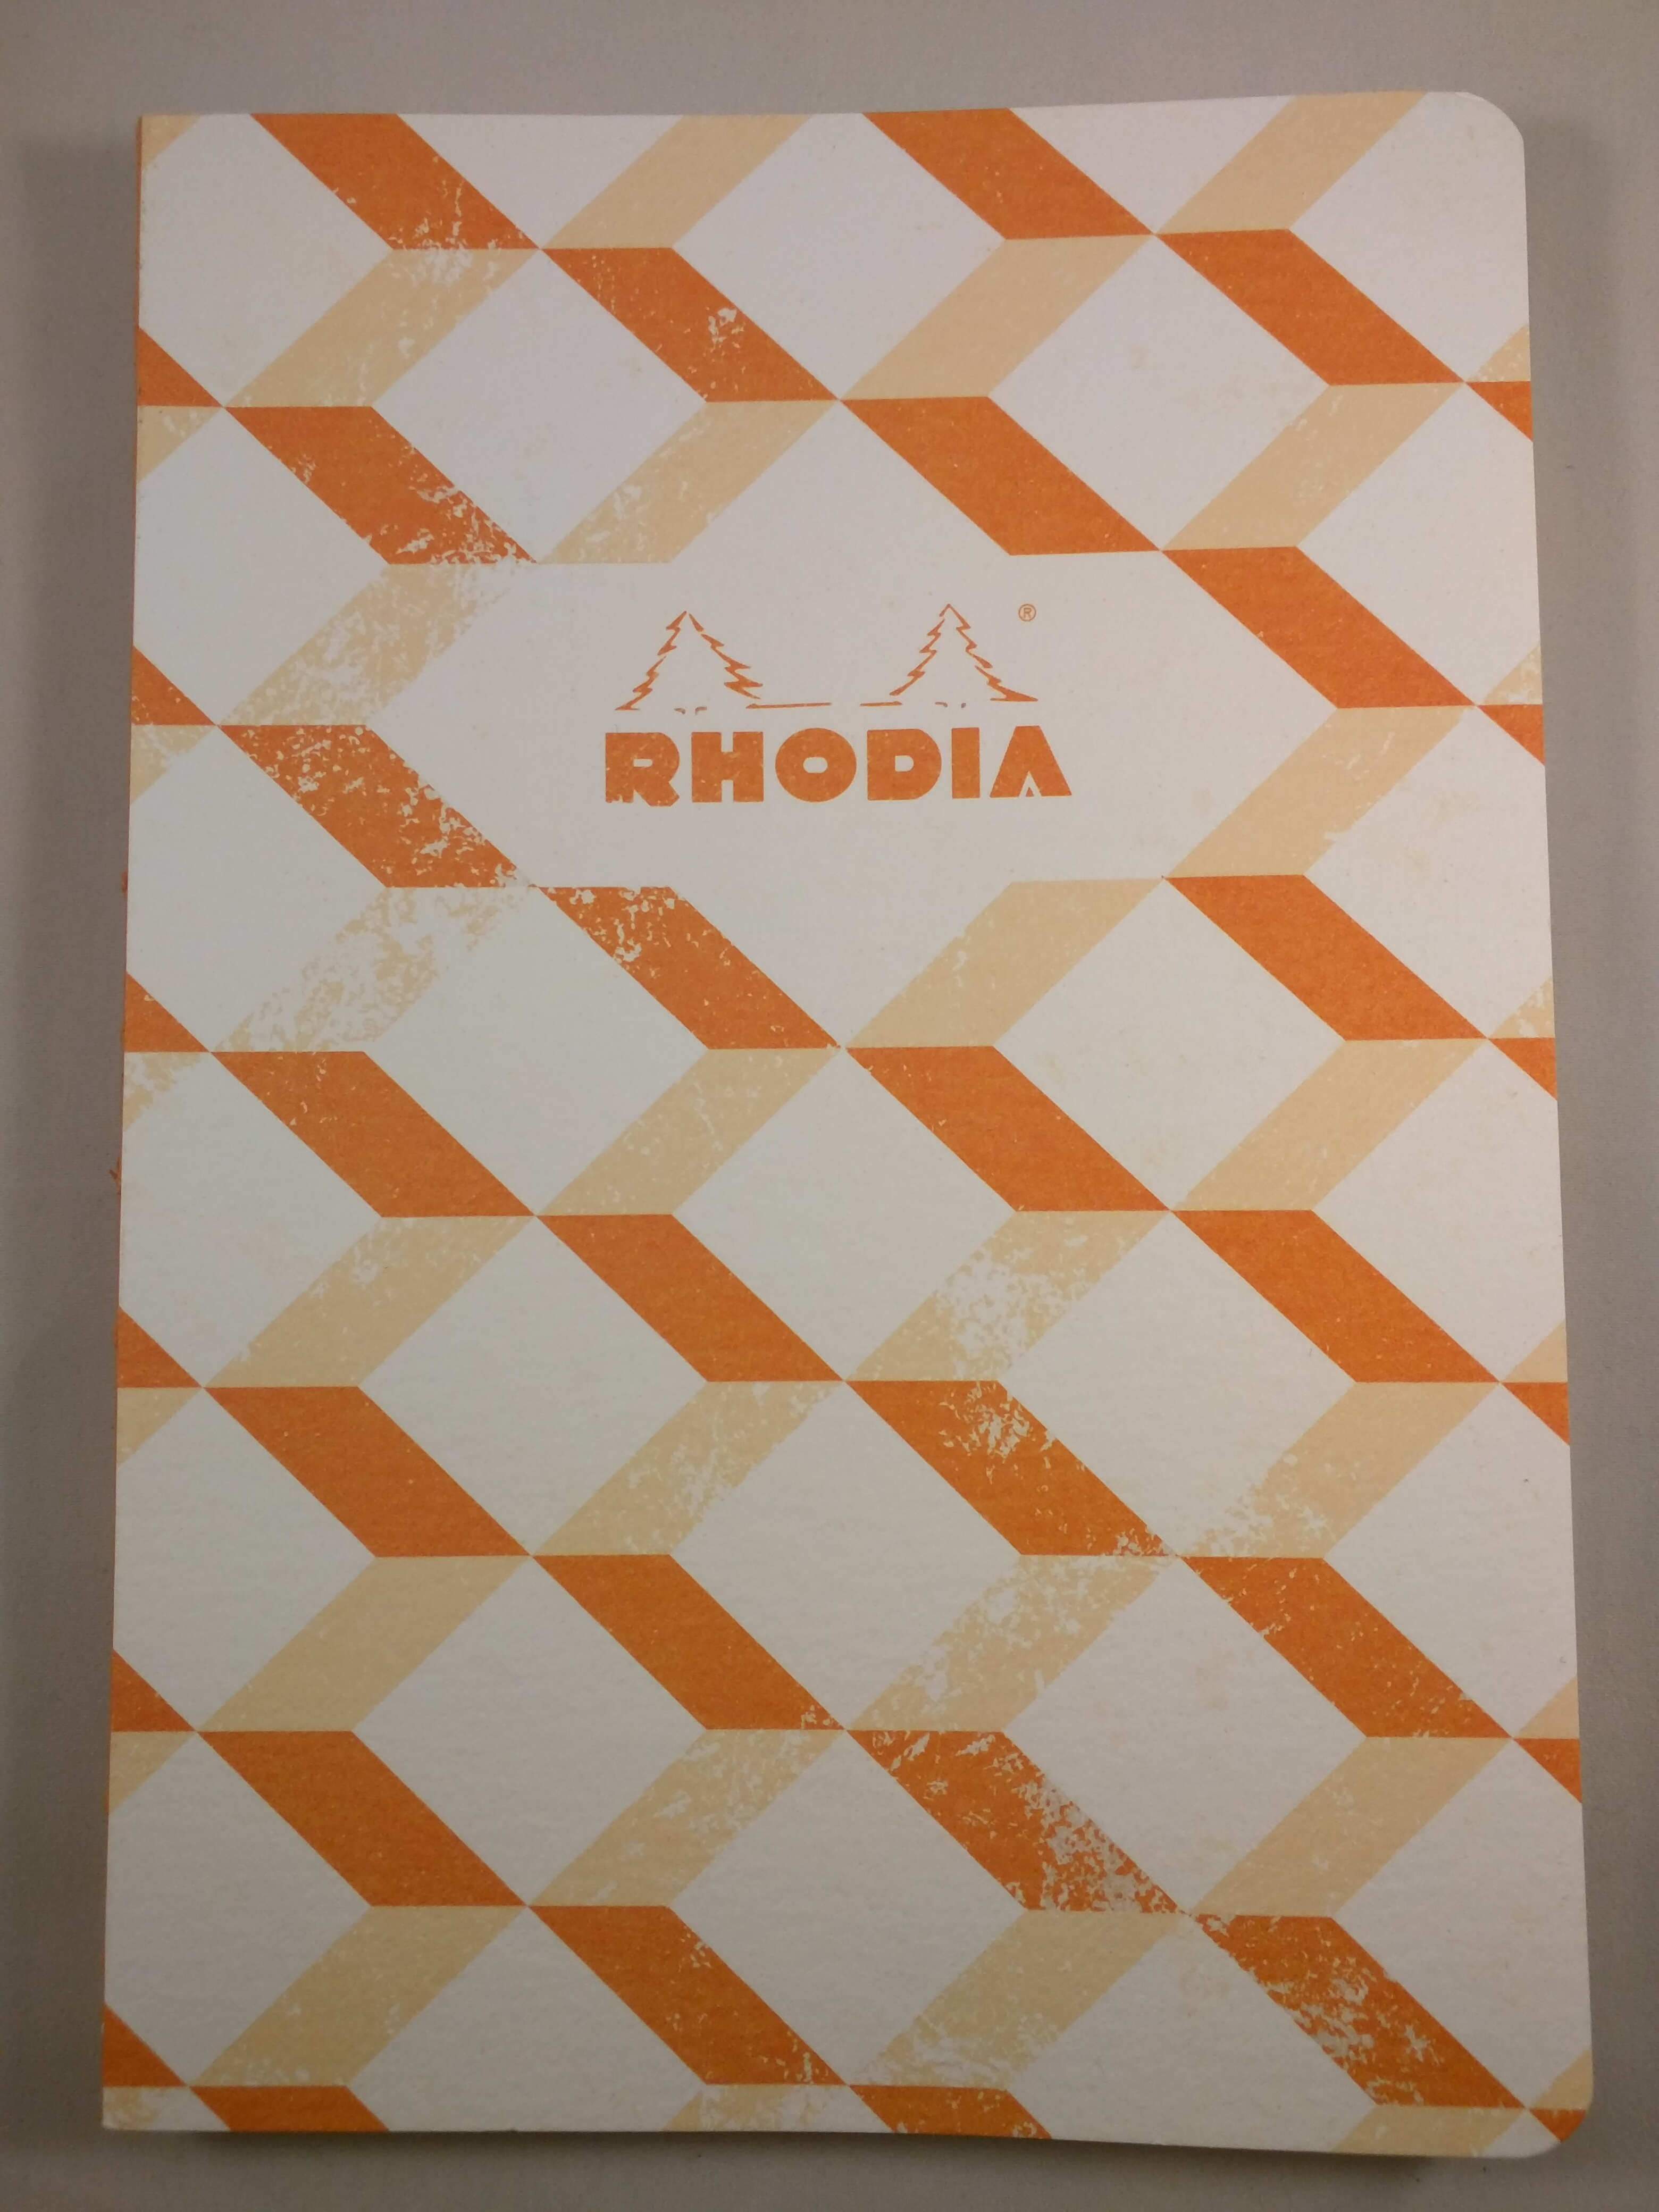 Rhodia Heritage notebook covers